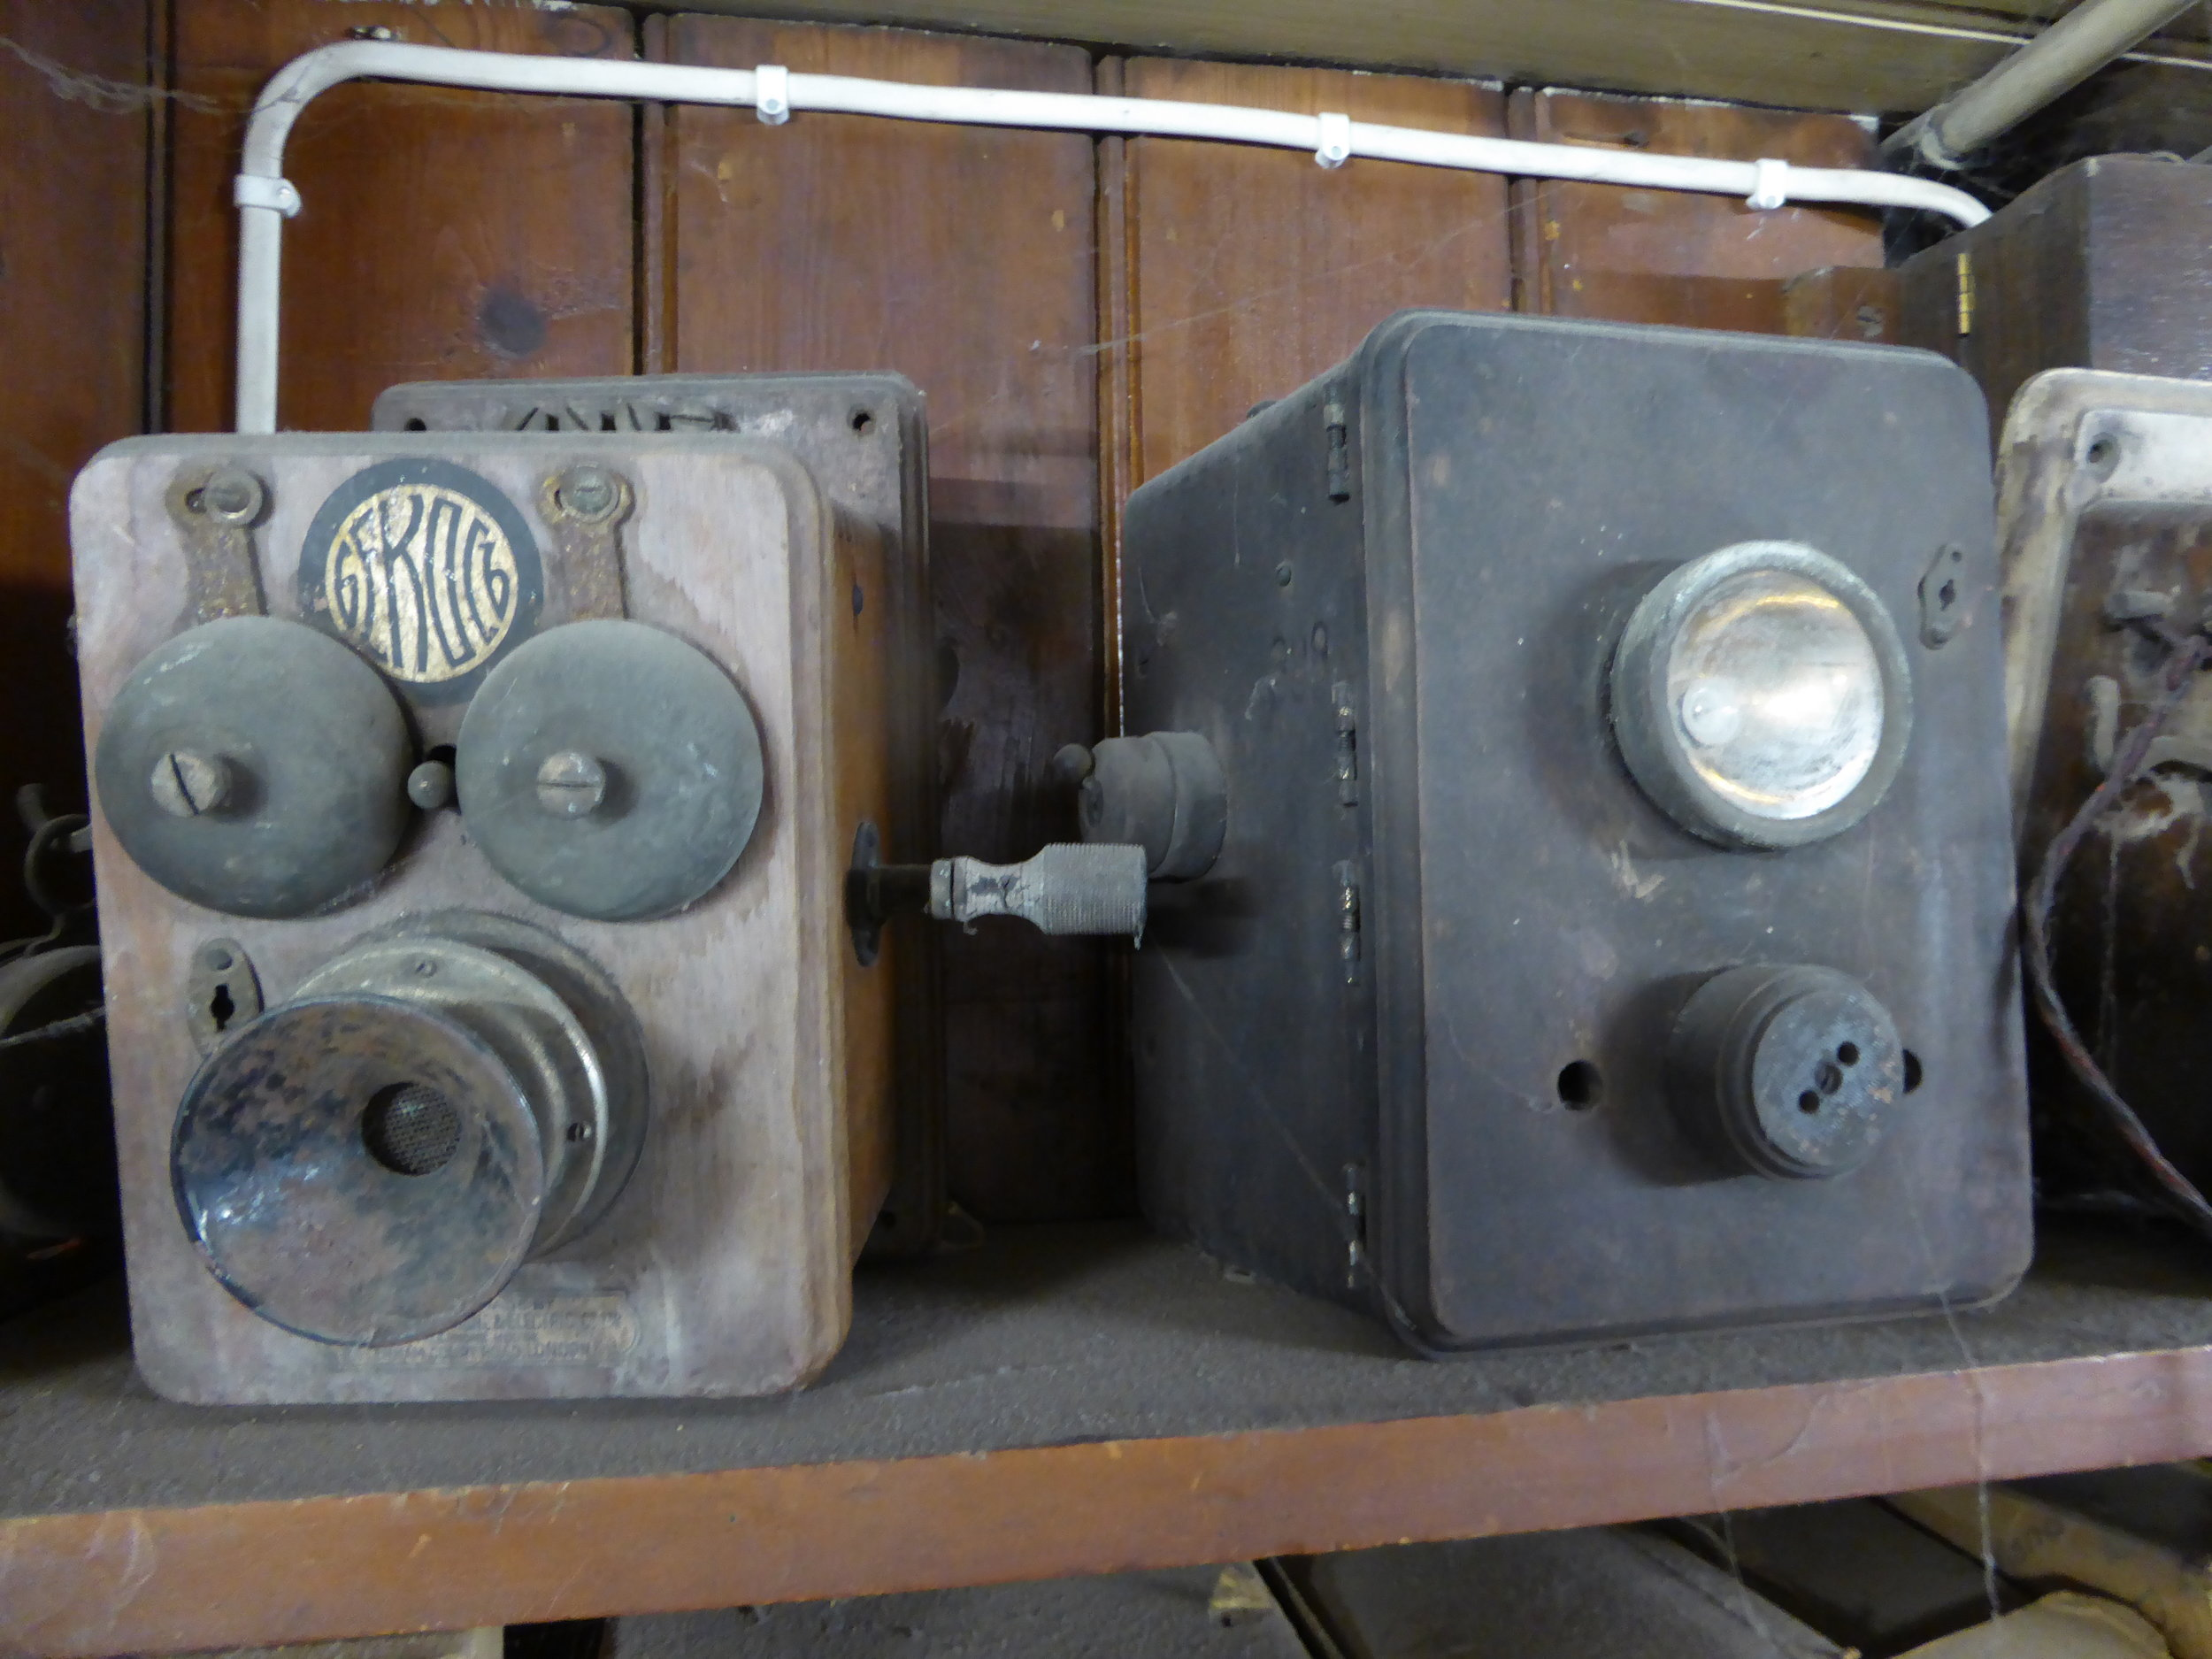 Old Telephones and torches